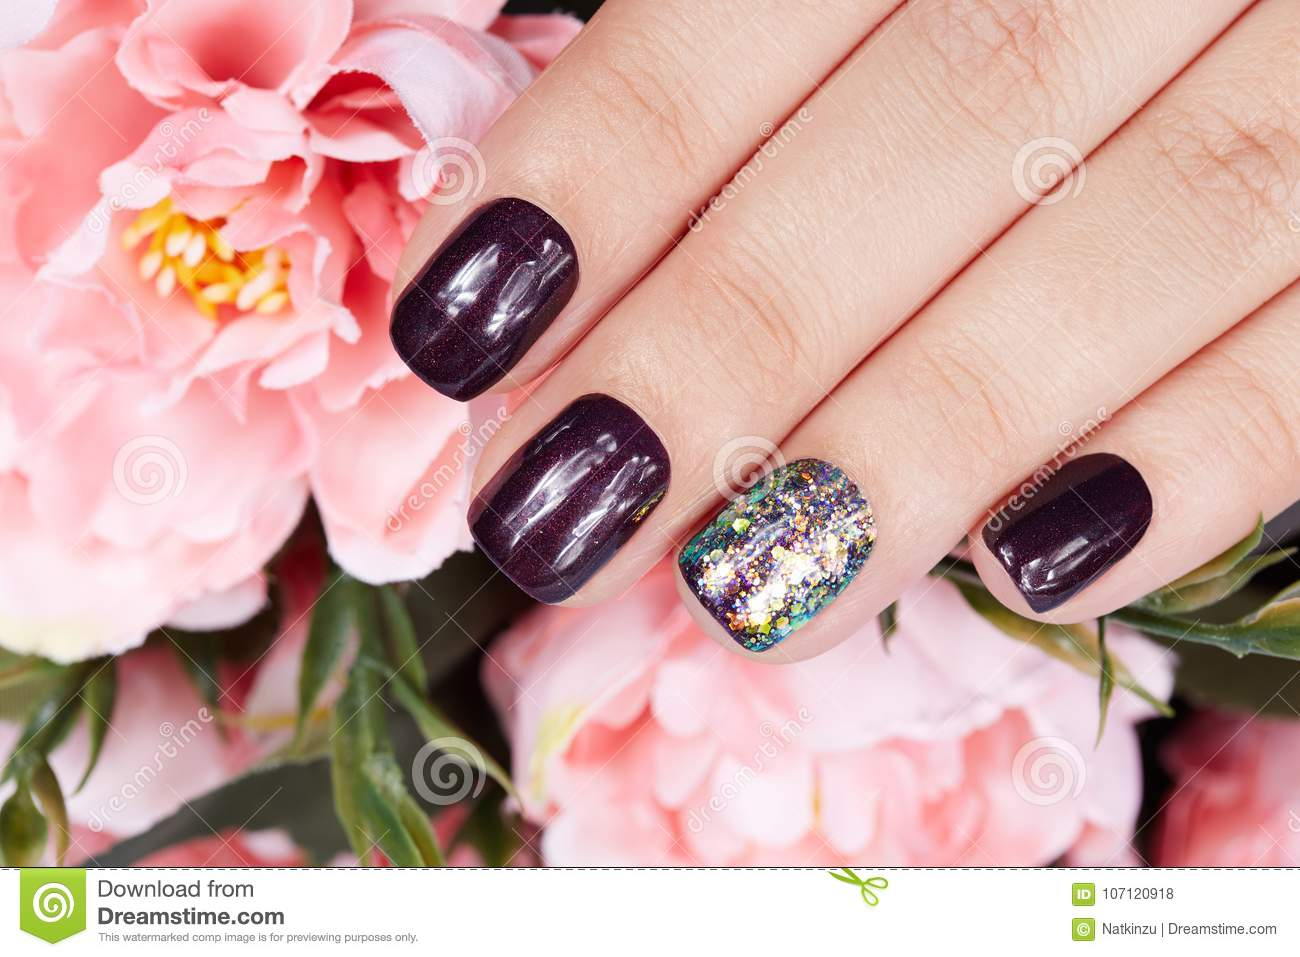 Hand with manicured nails colored with dark purple nail polish and pink peony flower